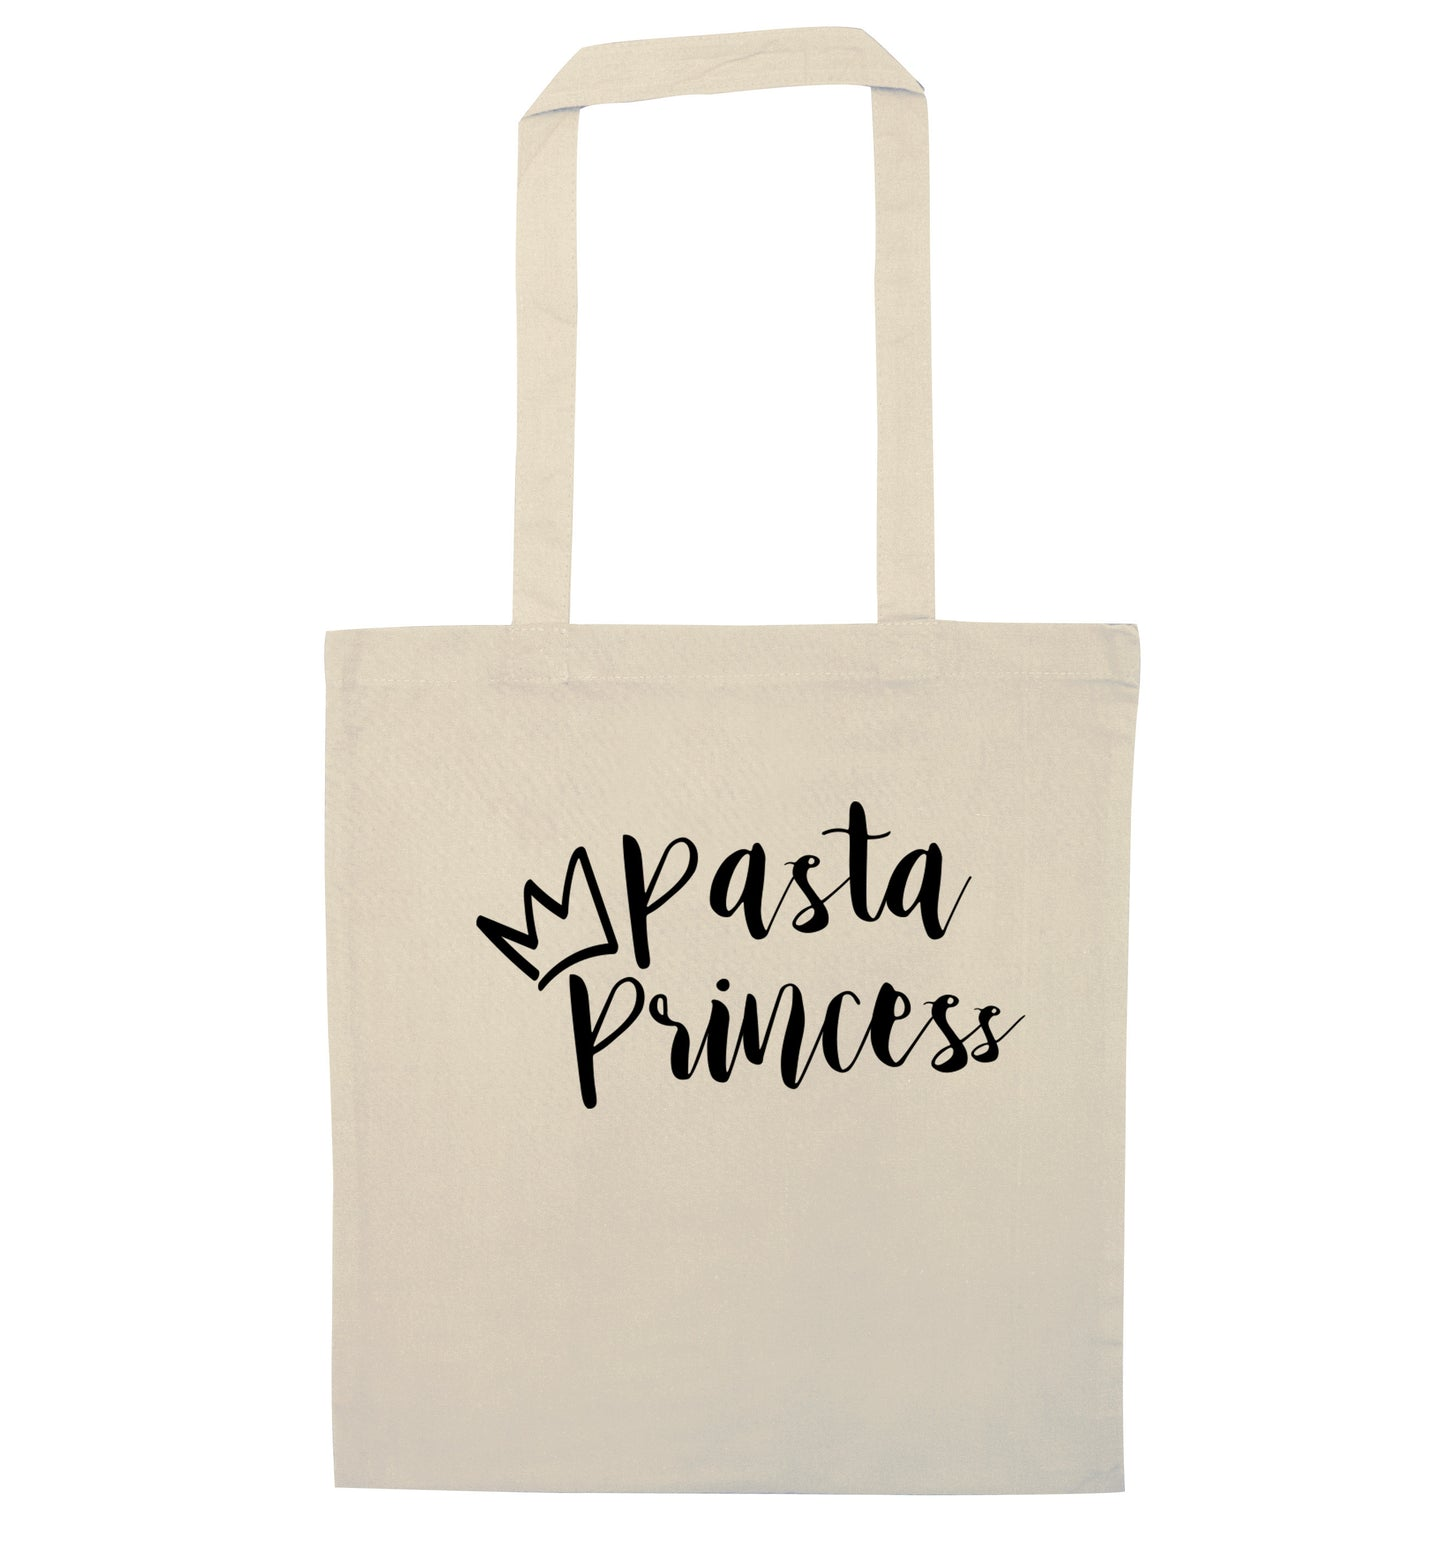 Pasta Princess natural tote bag